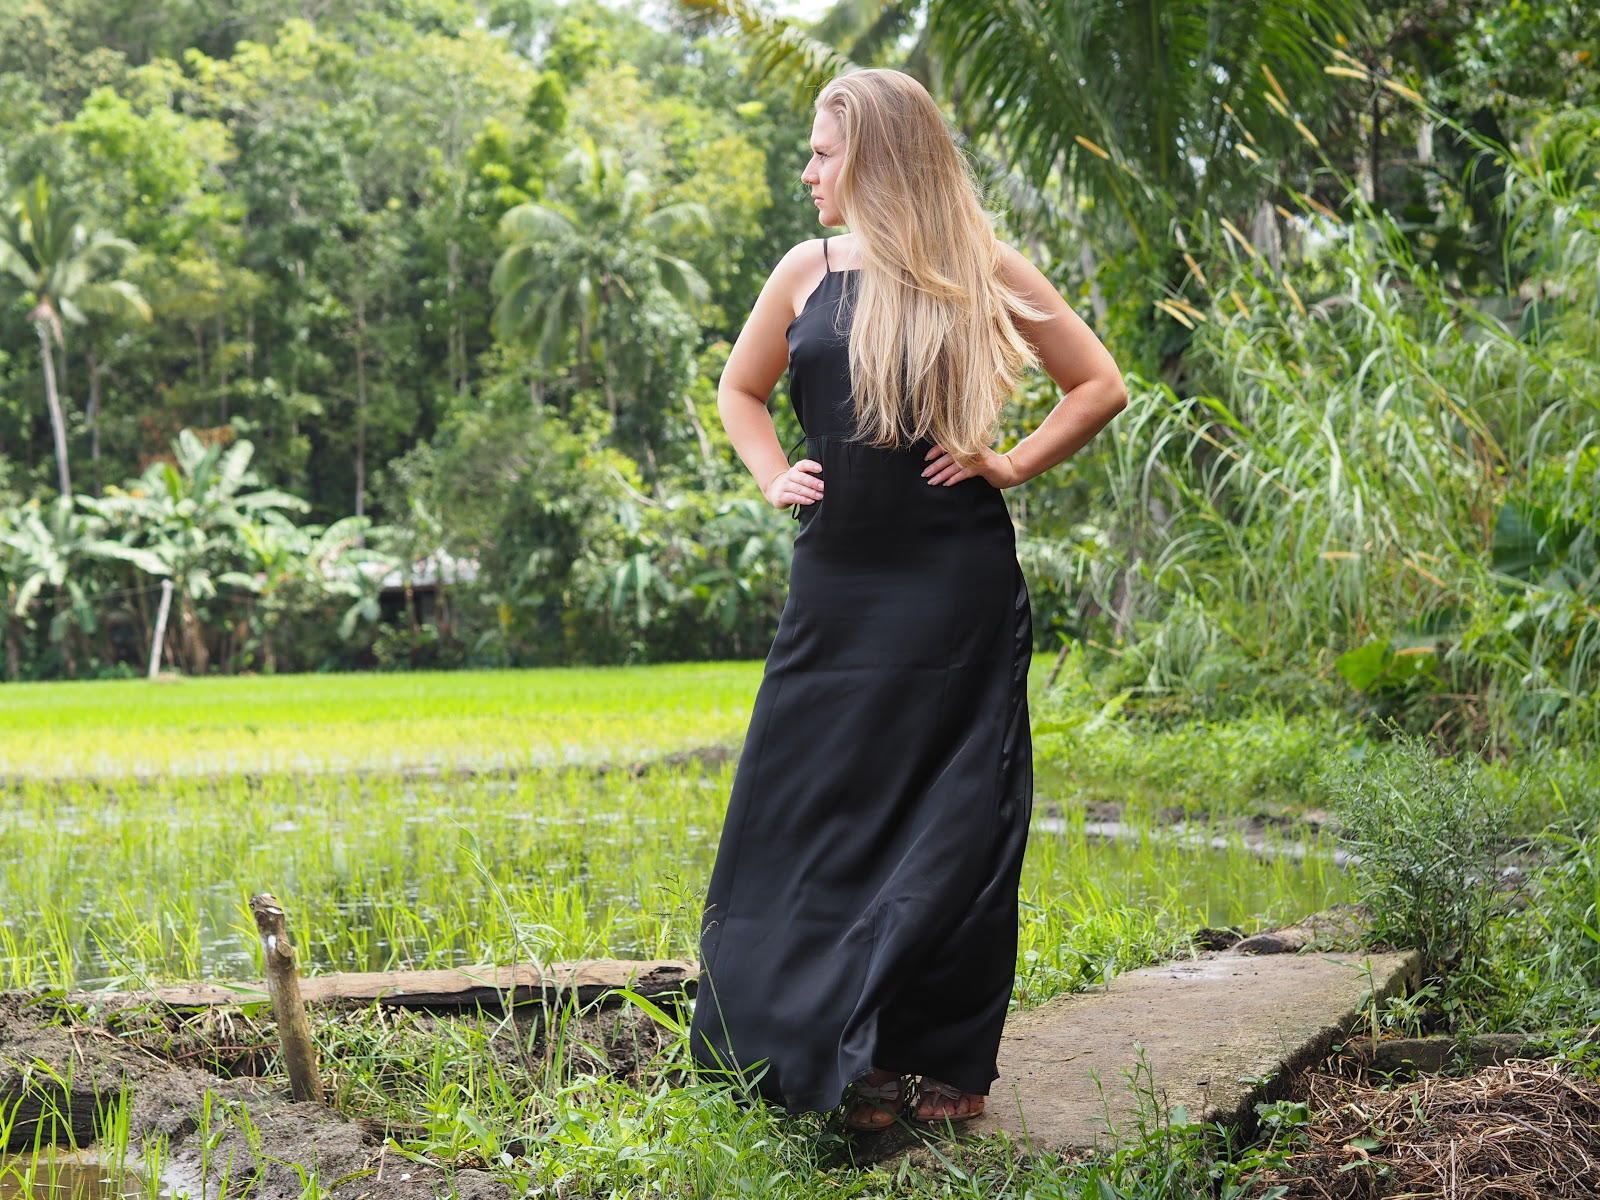 Blonde girl wearing Black Boohoo dress in rice fields in Philippines